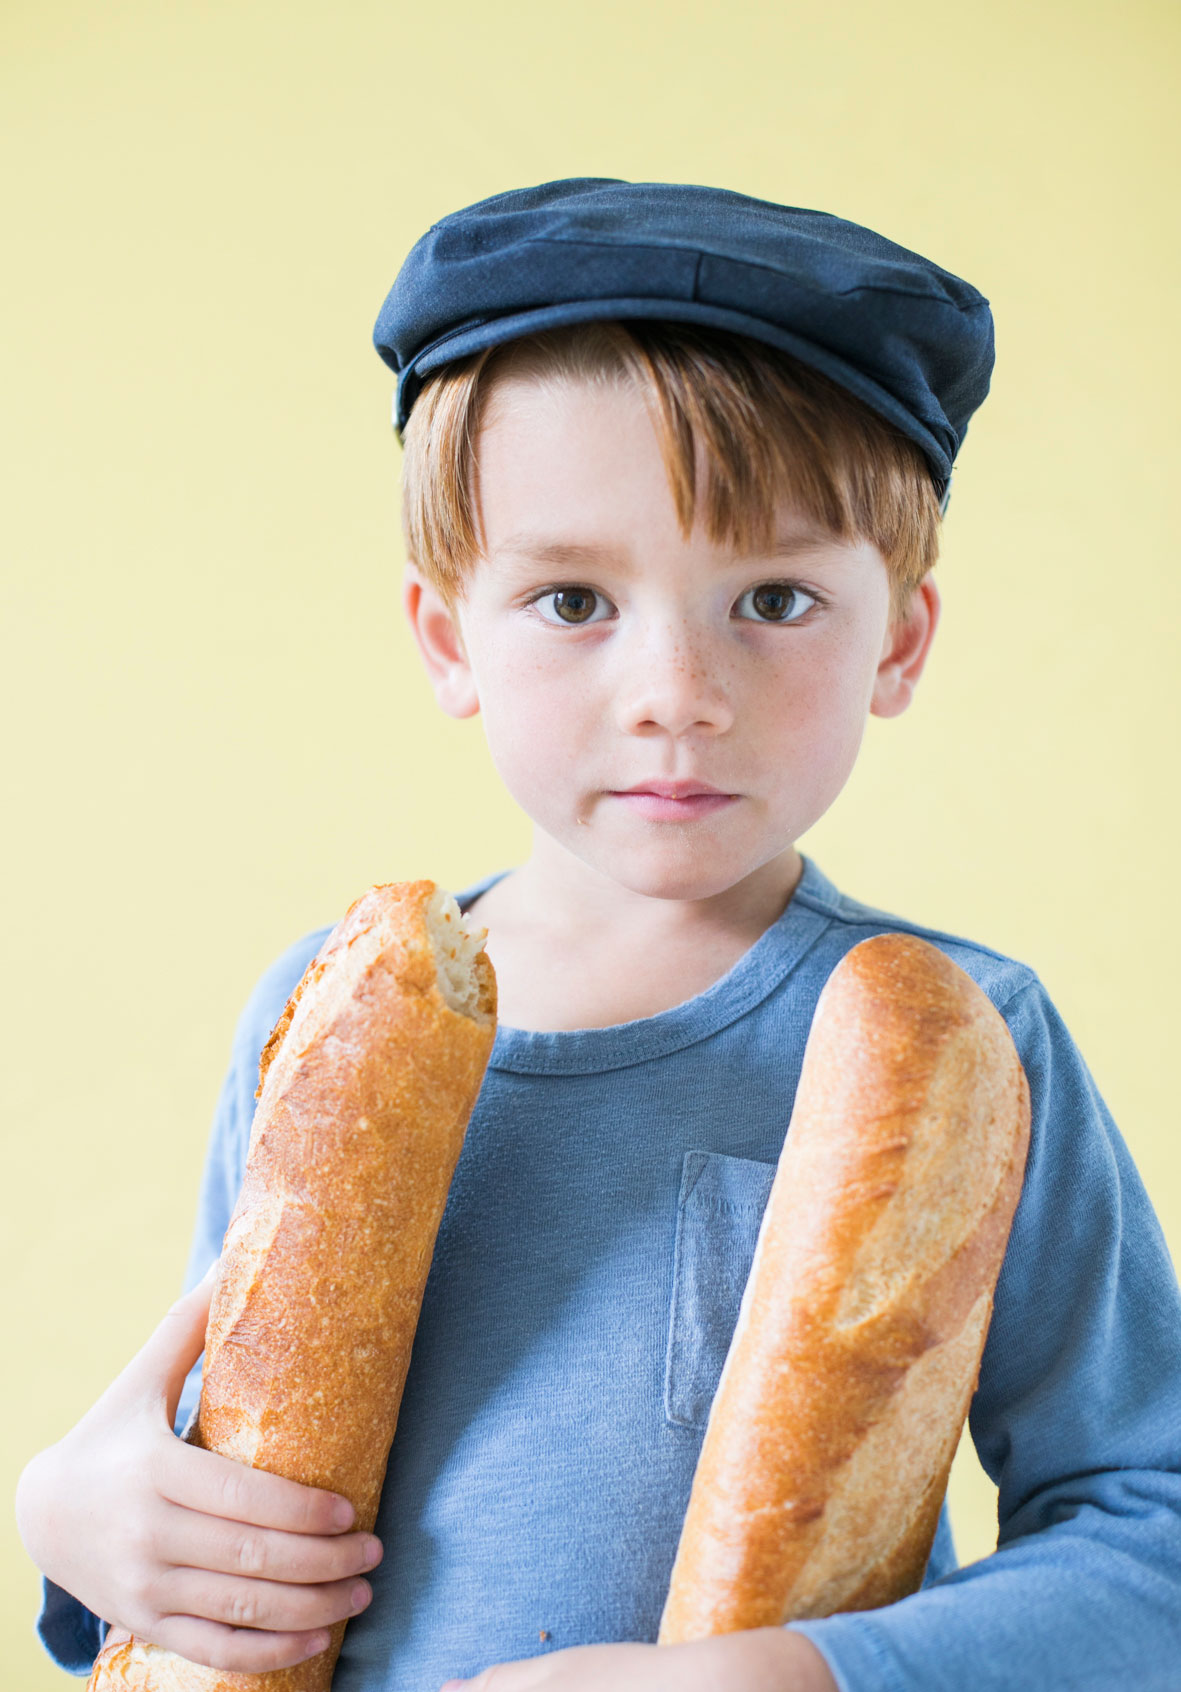 Child with a Baguette